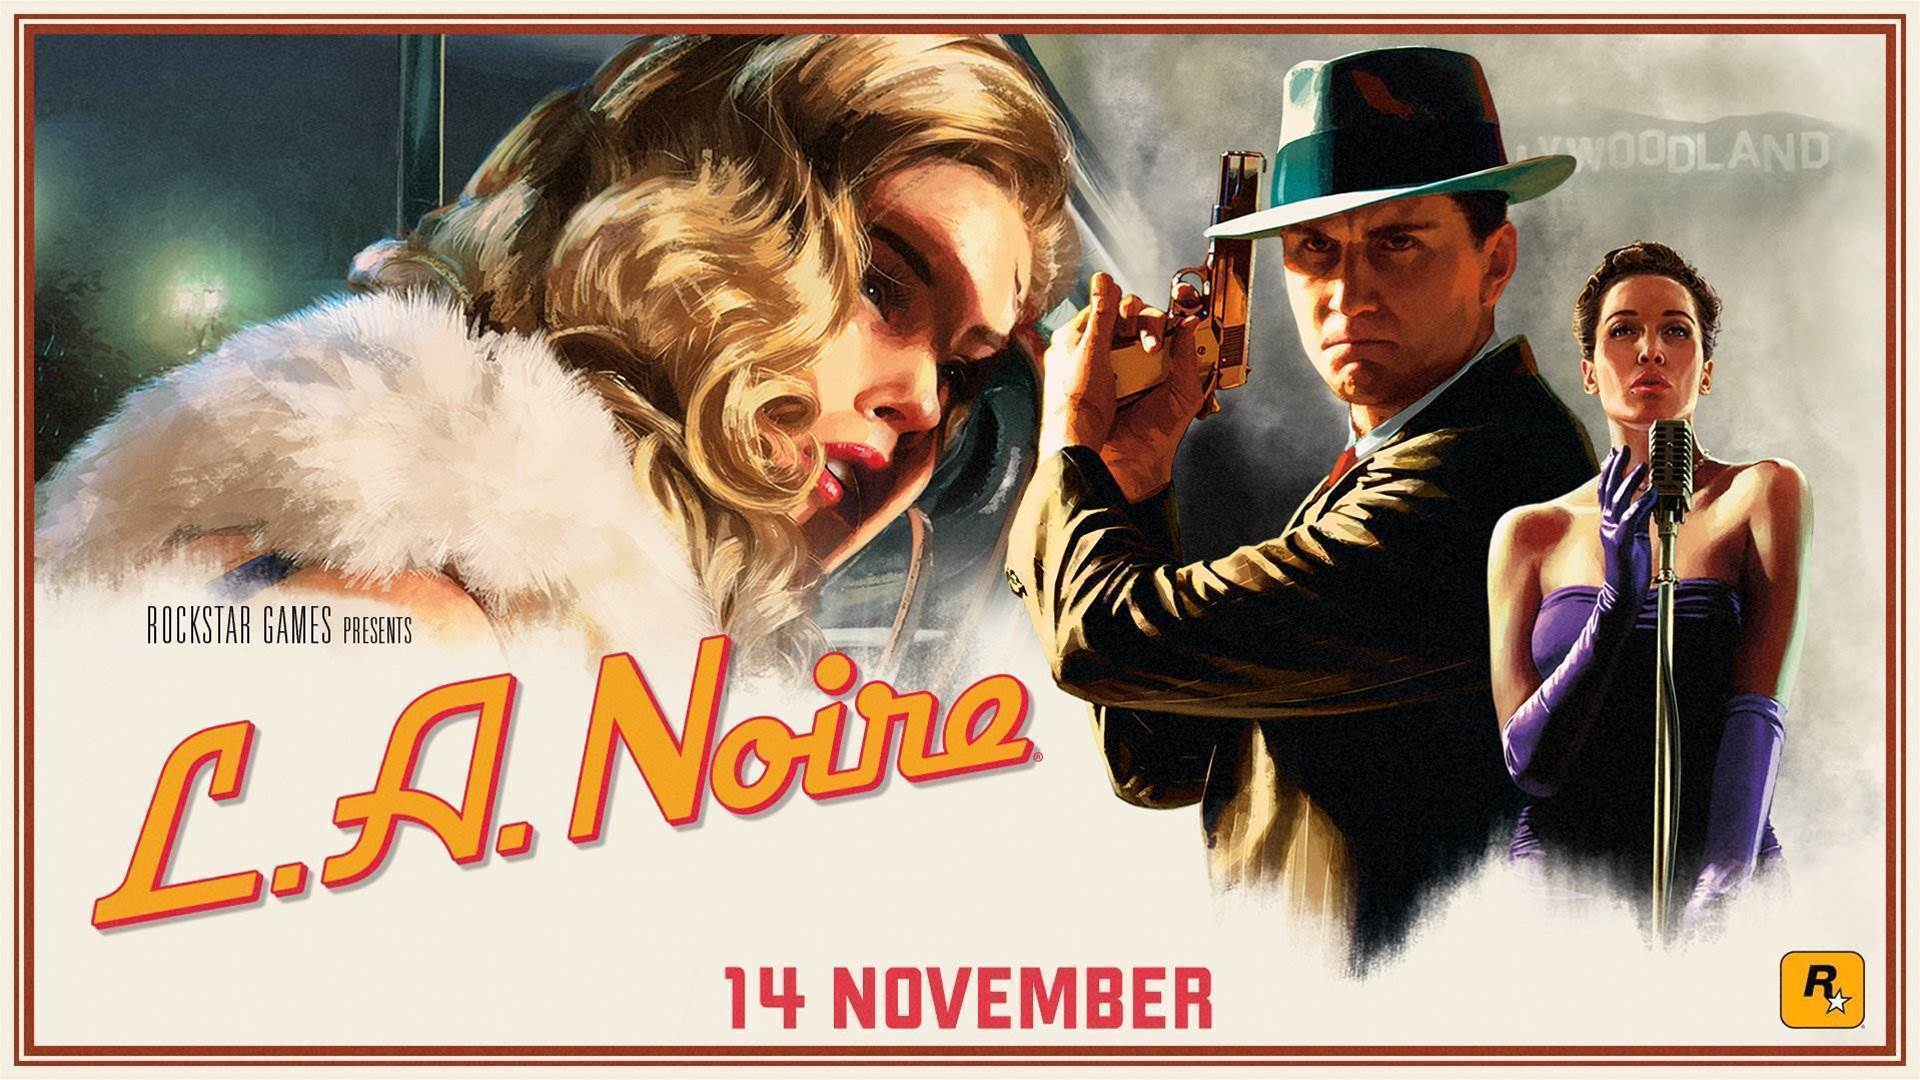 New versions of Rockstar classic L.A. Noire coming to consoles and VR this year